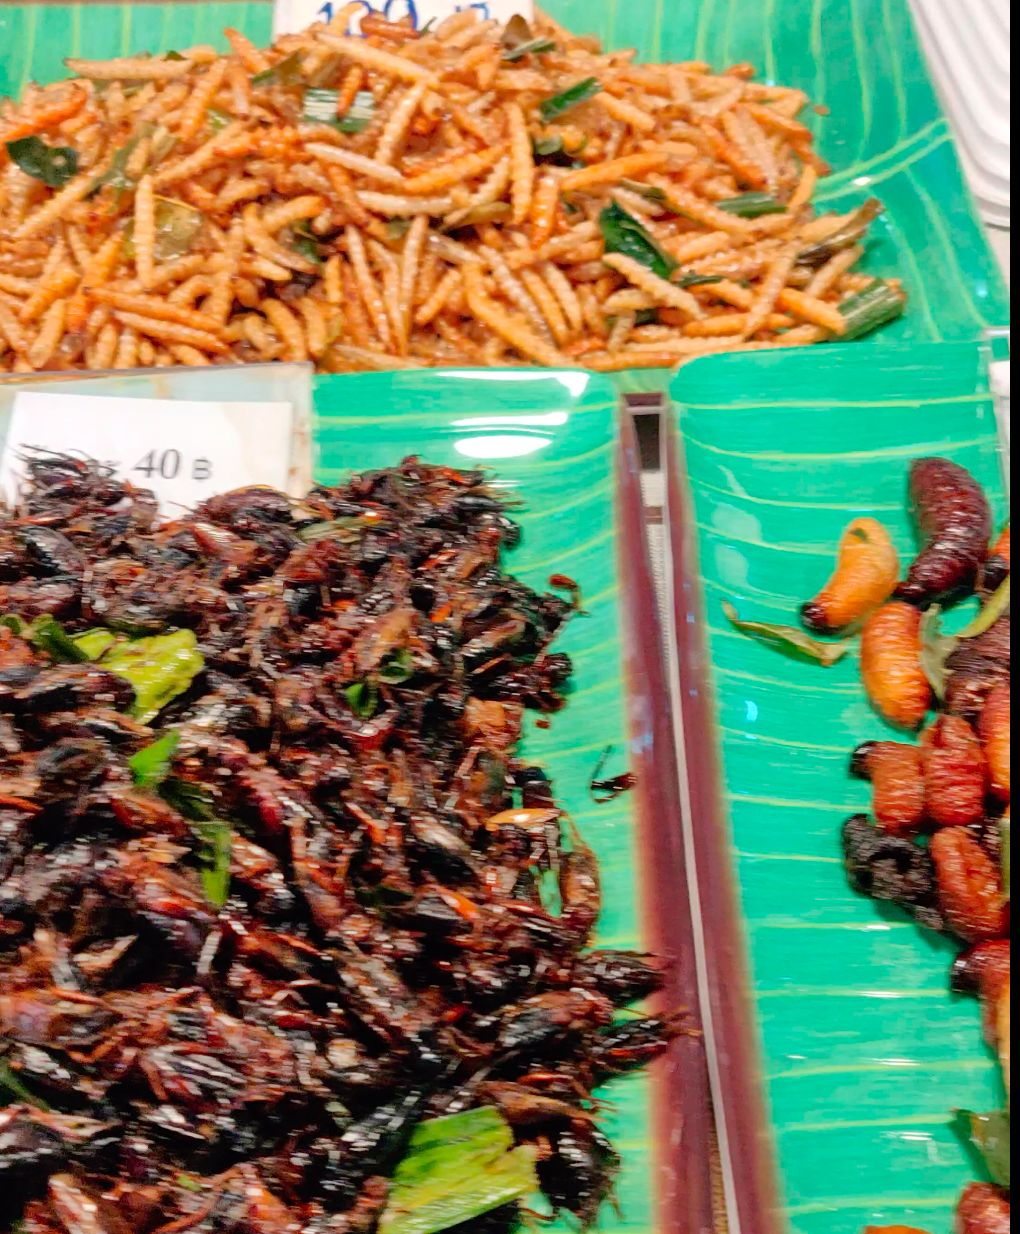 Fried worms, crickets